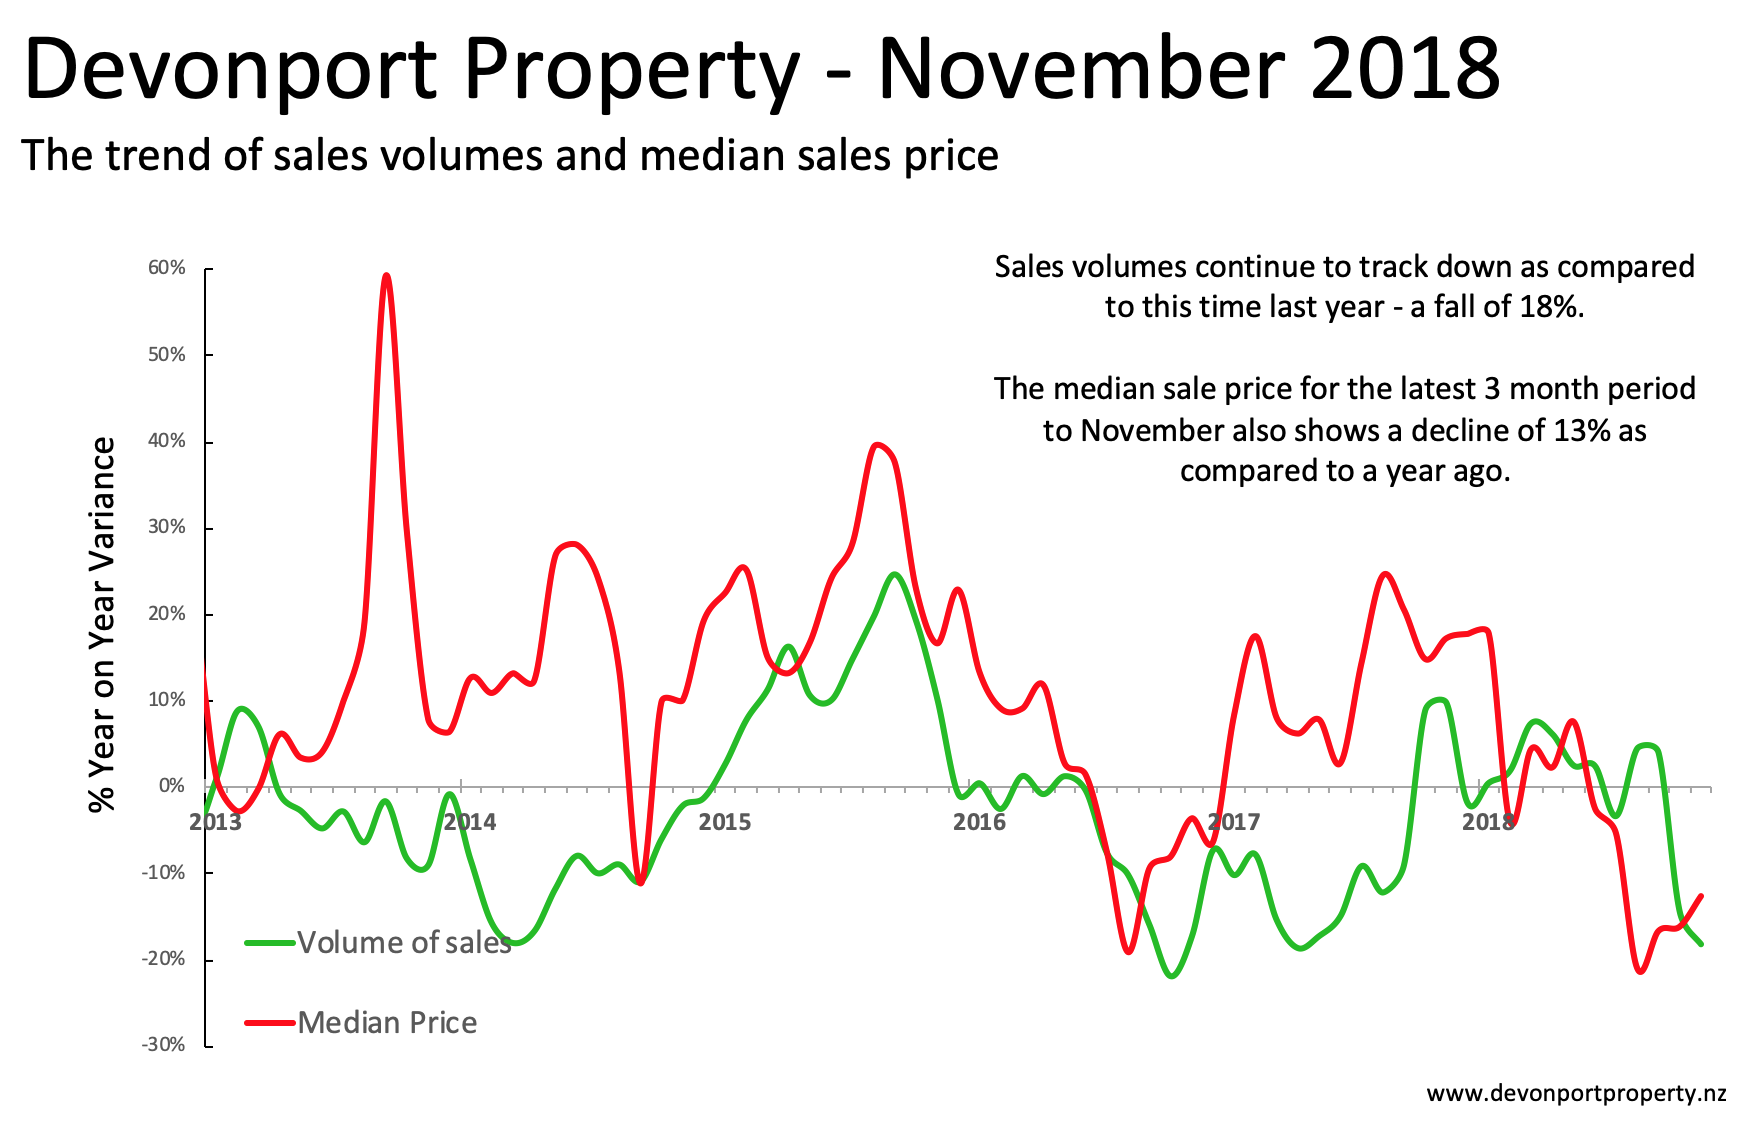 Devonport Property Nov 2018 - Total property variance 3MMT.png